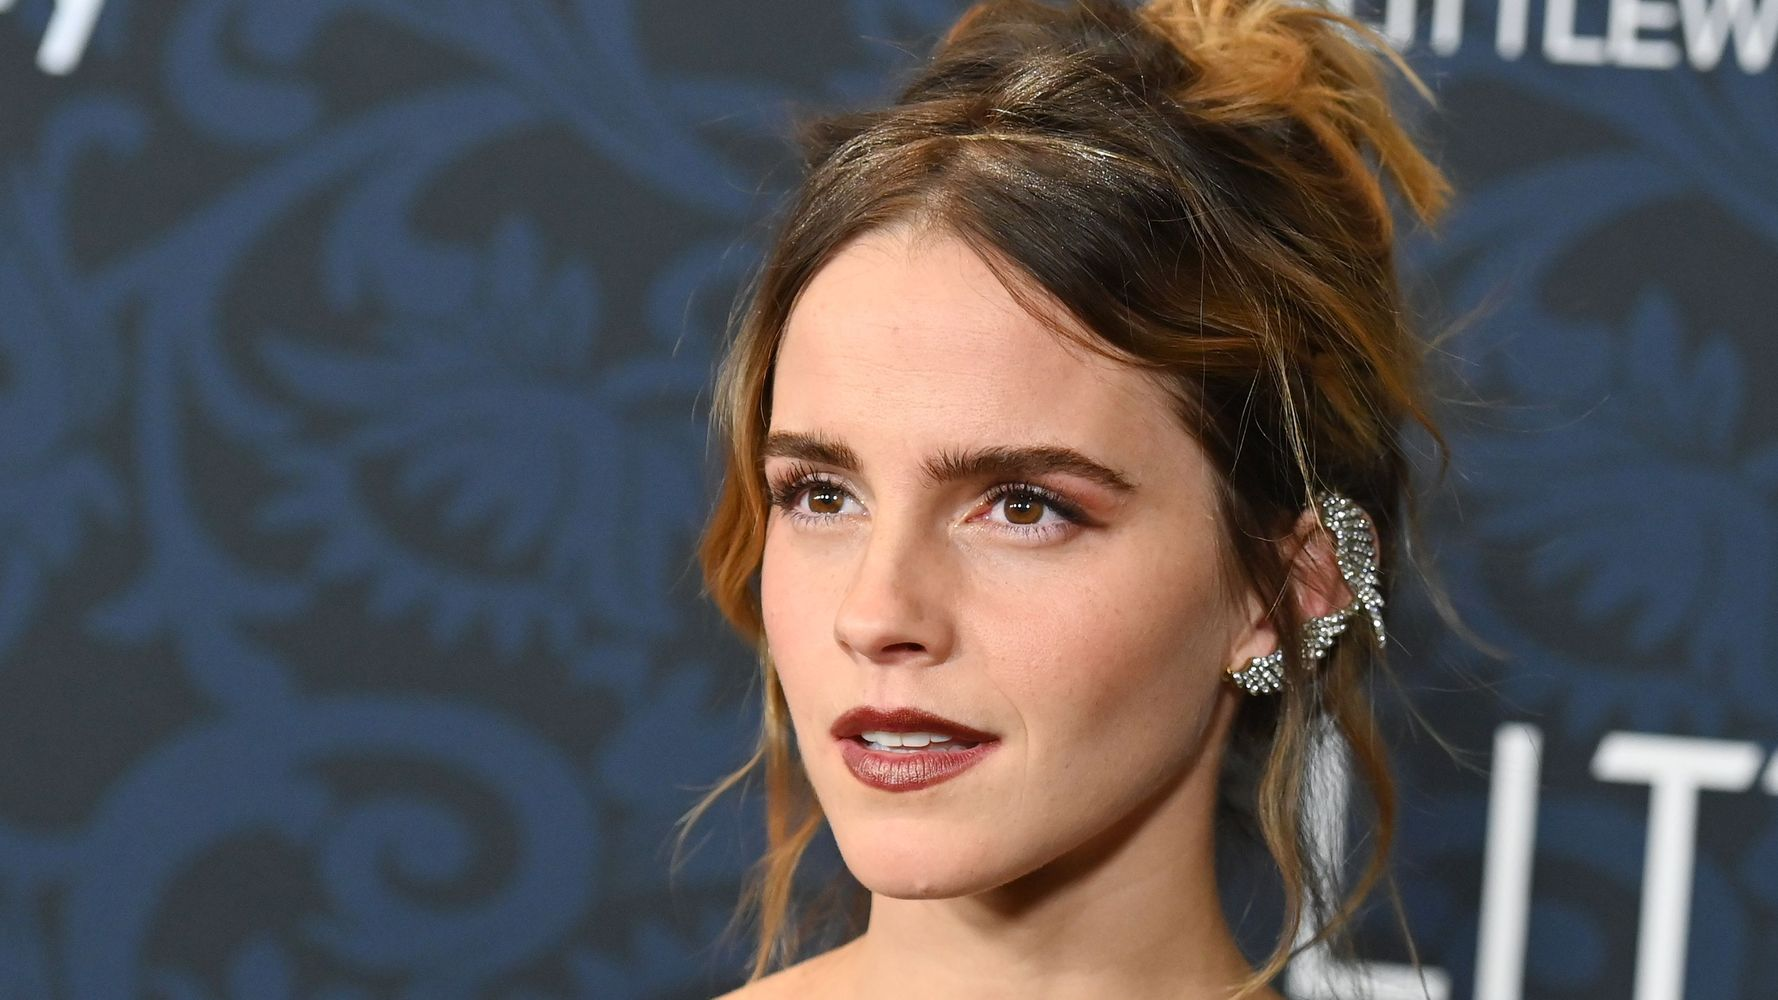 Emma Watson Rep Clarifies Claims She Has 'Given Up' Acting - HuffPost